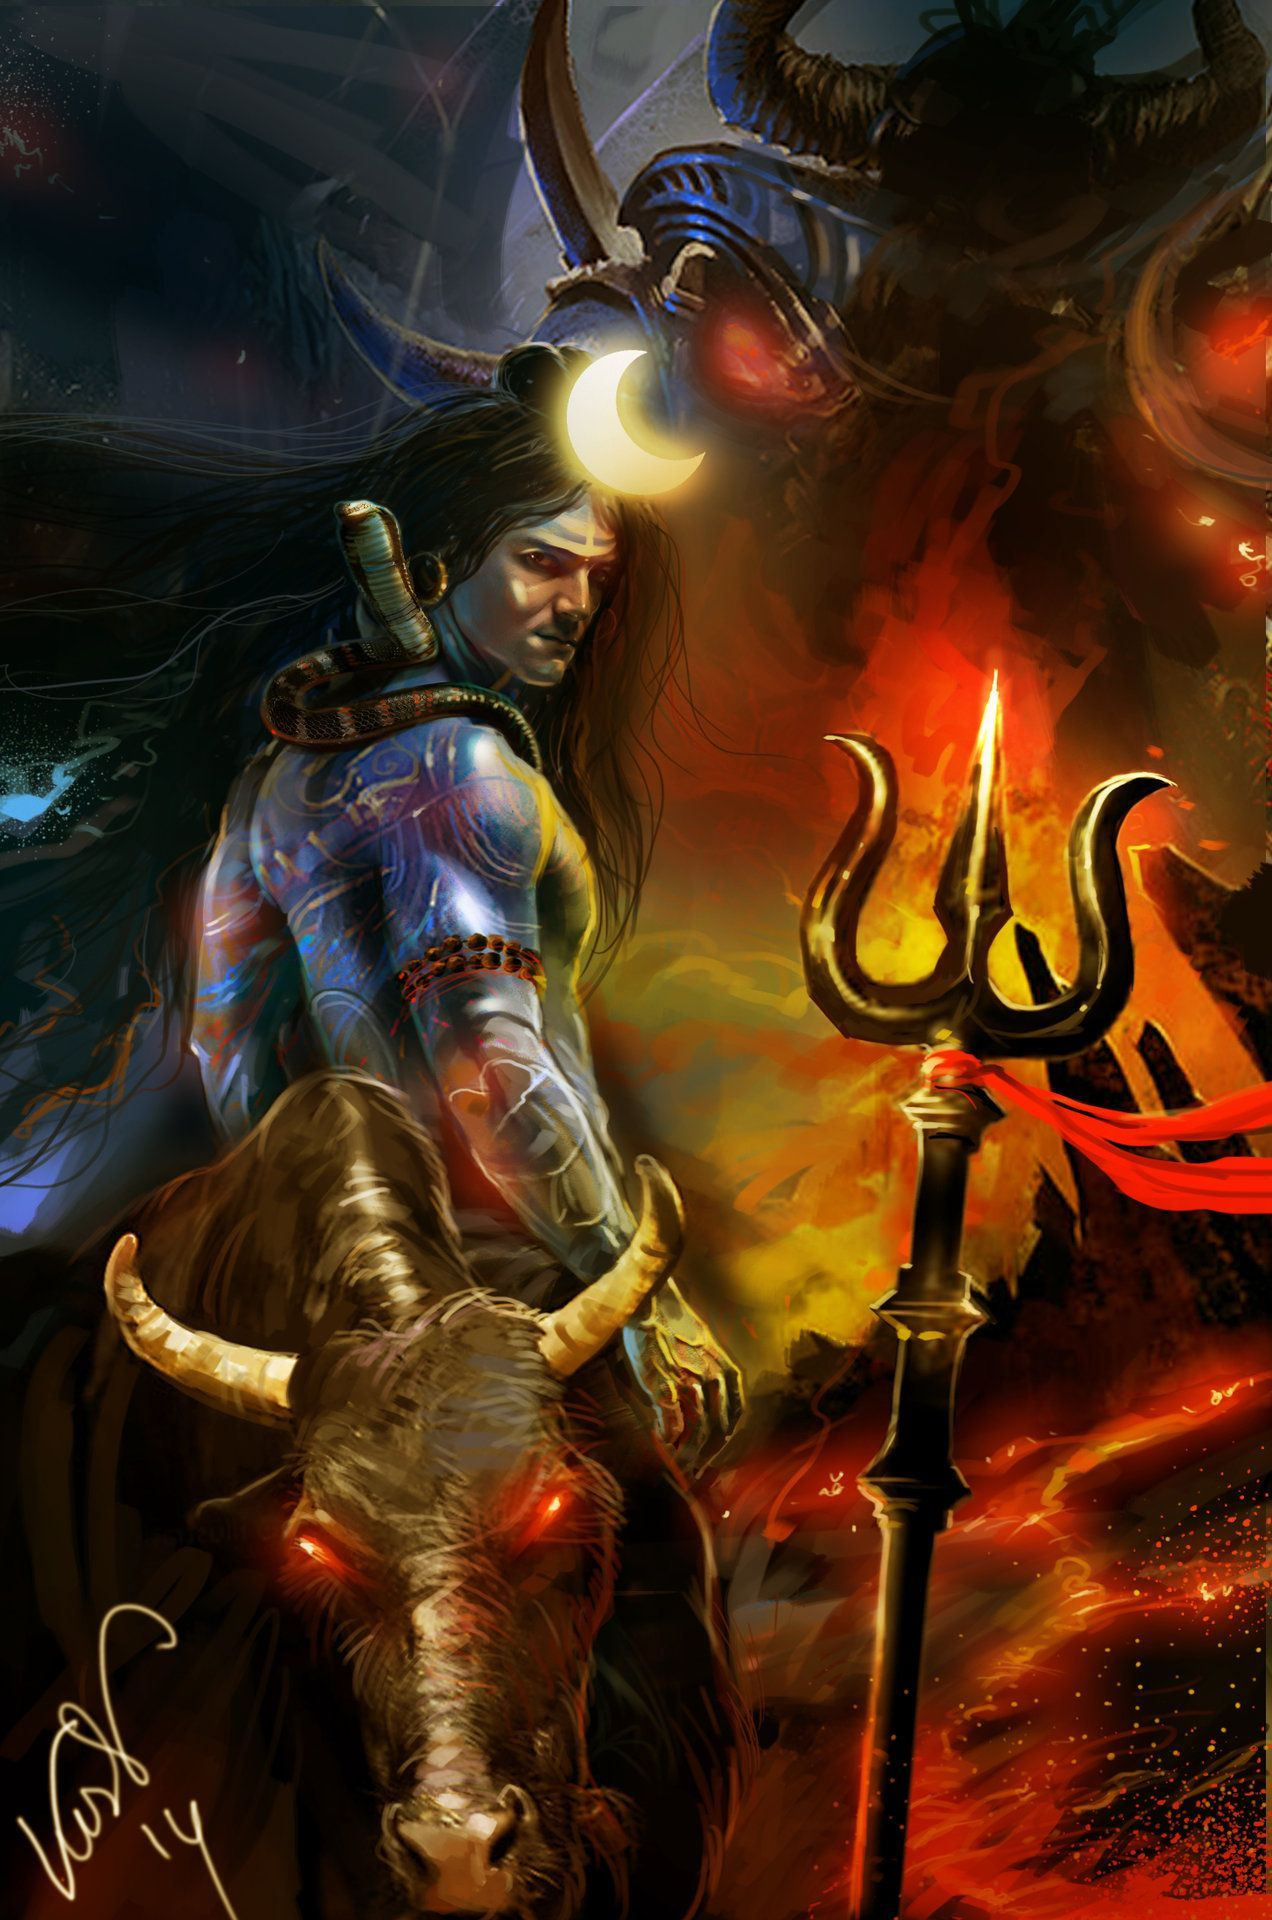 angry lord shiva wallpapers top free angry lord shiva backgrounds wallpaperaccess angry lord shiva wallpapers top free